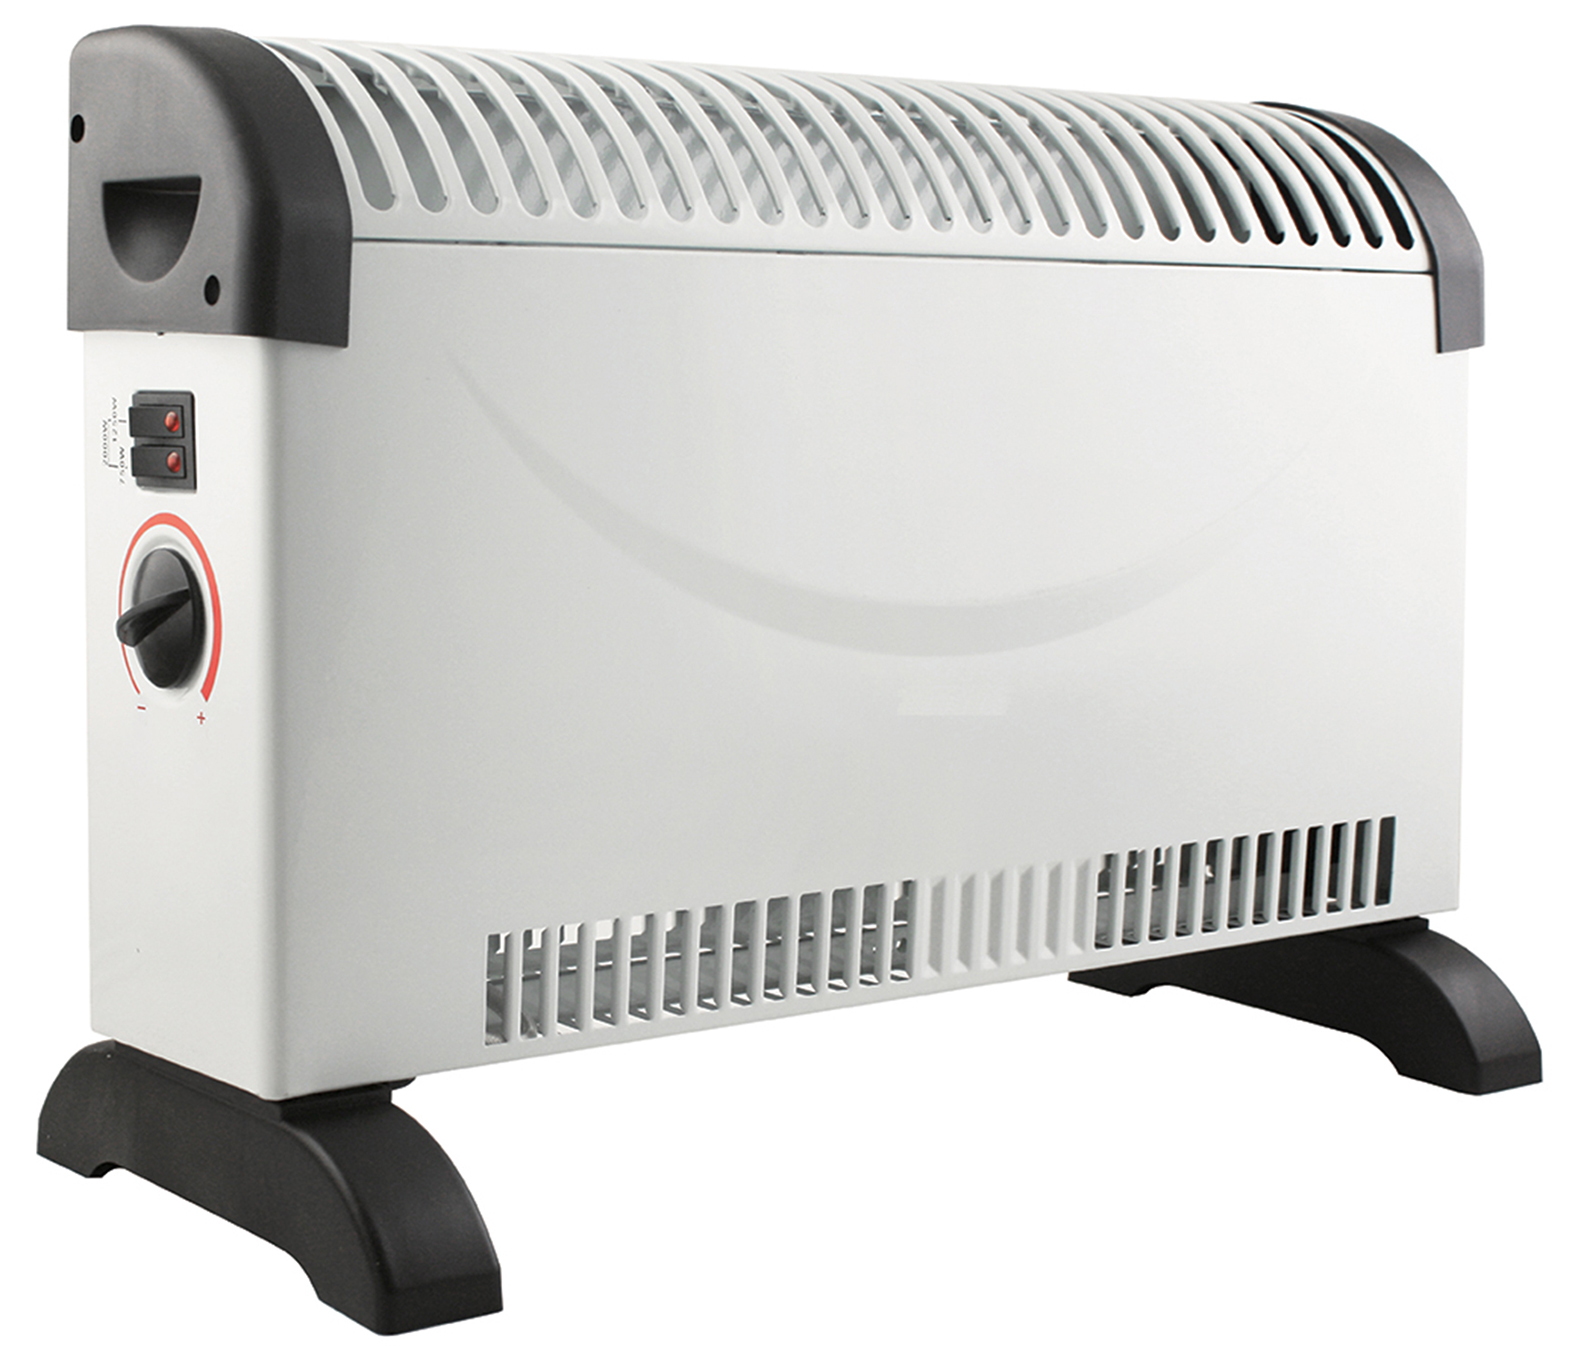 small convector heater with thermostat